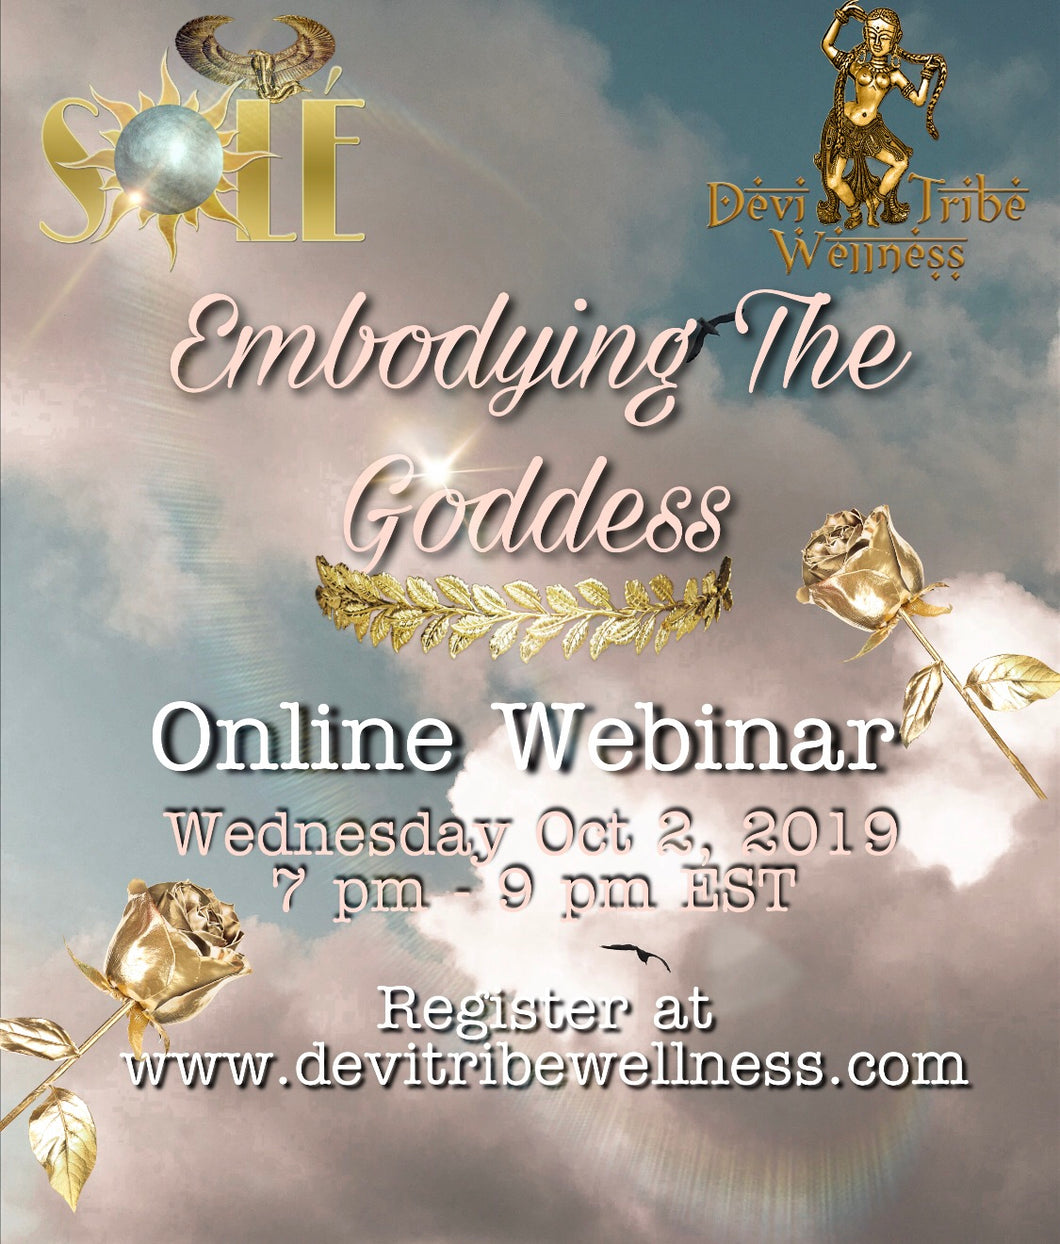 Recording: Embodying The Goddess - Online Webinar